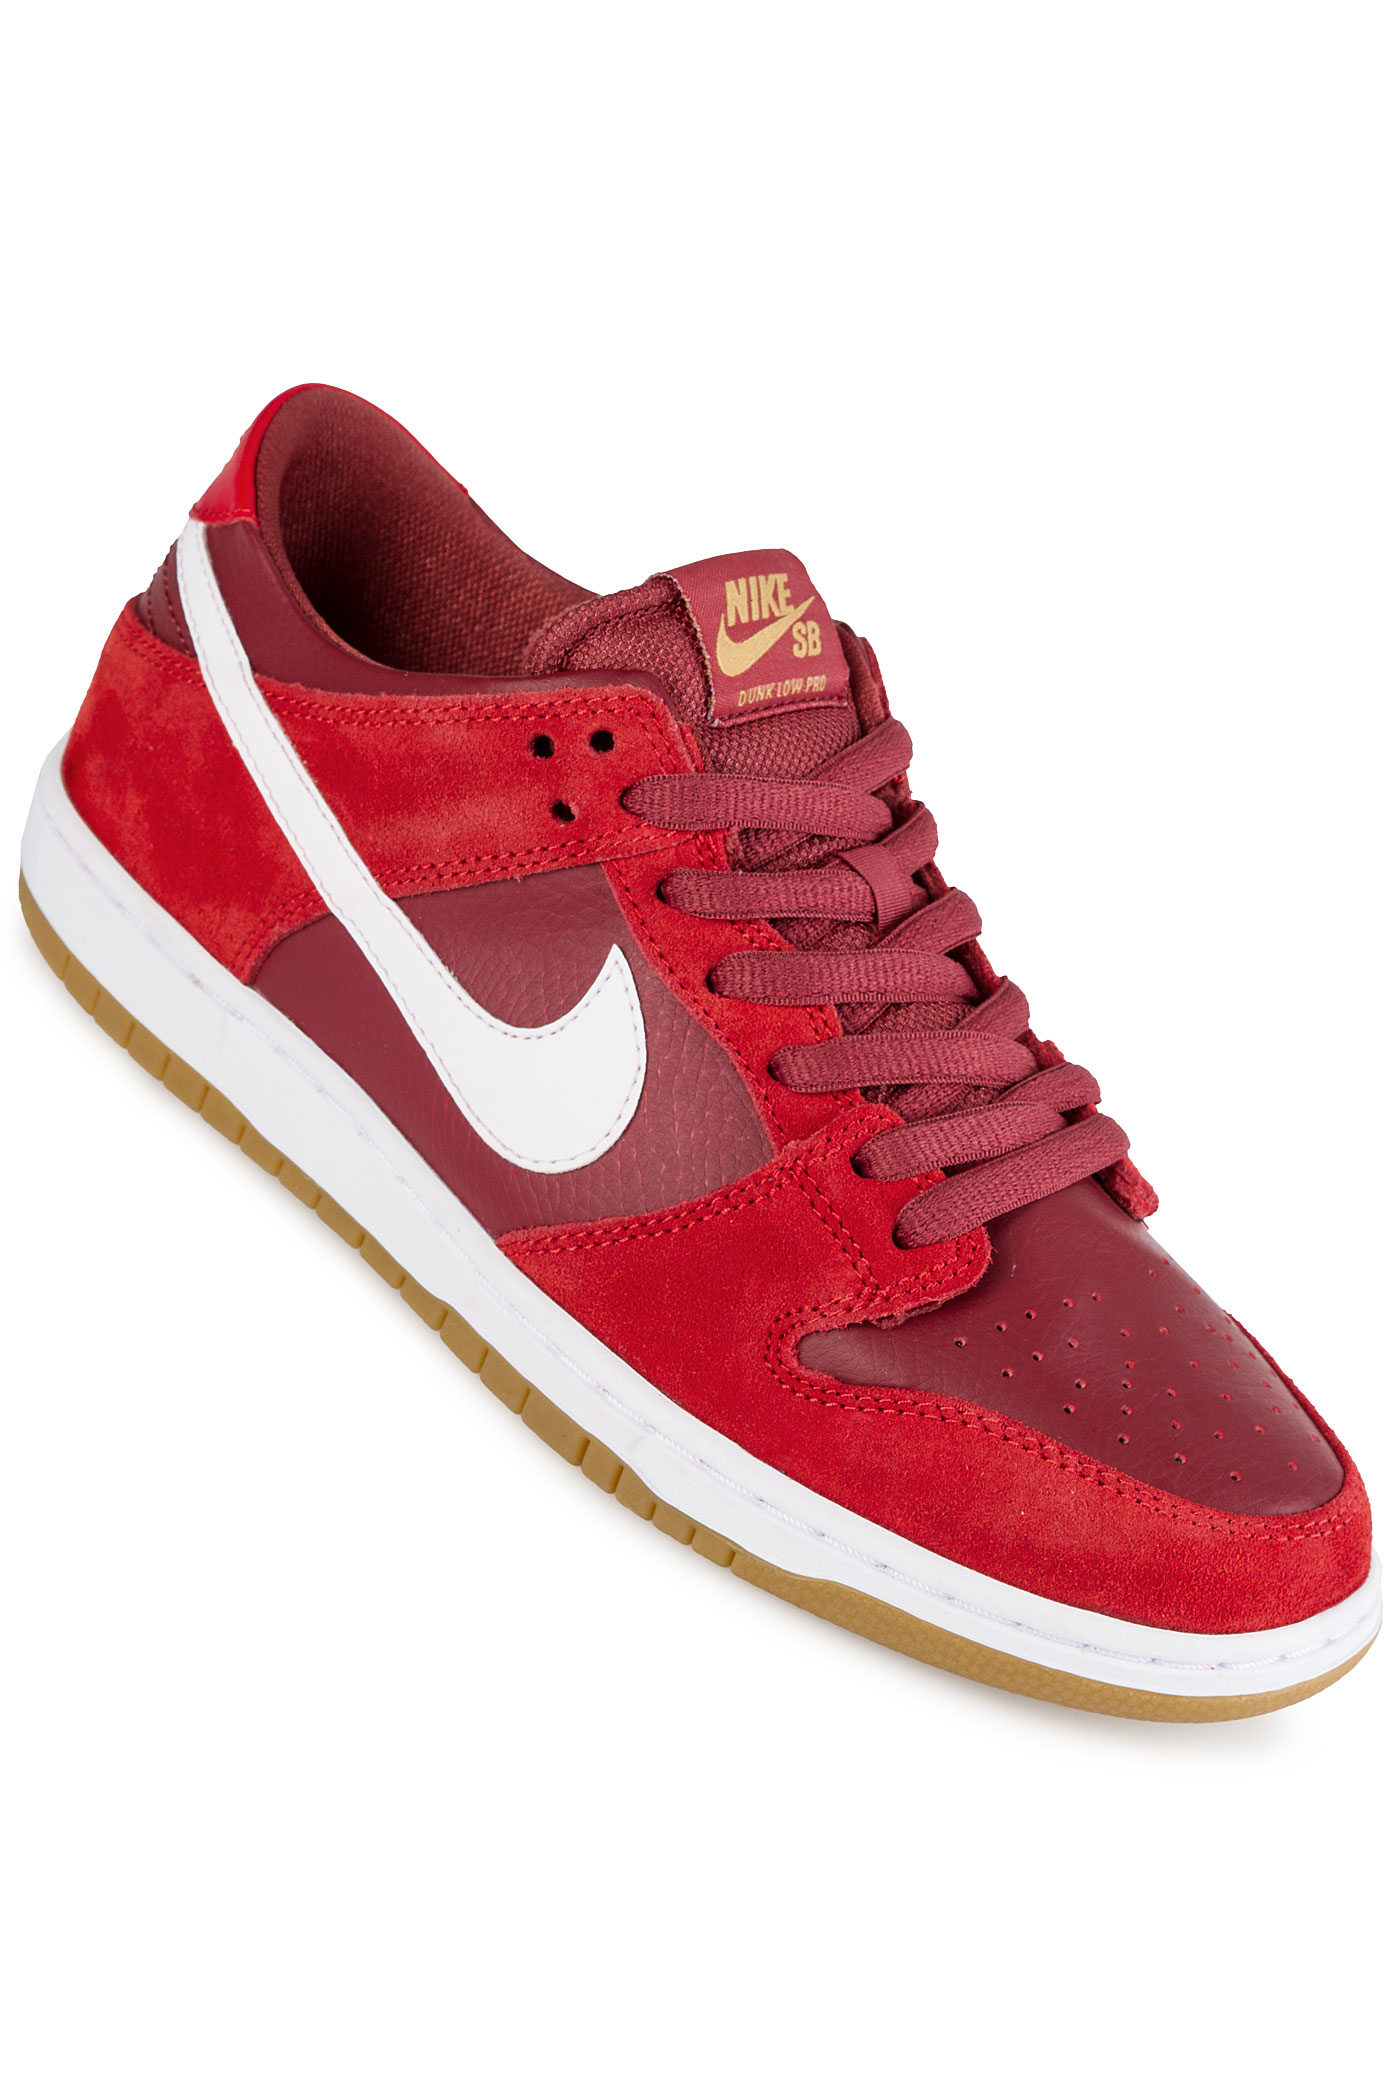 nike sb dunk low pro chaussure track red white achetez sur skatedeluxe. Black Bedroom Furniture Sets. Home Design Ideas